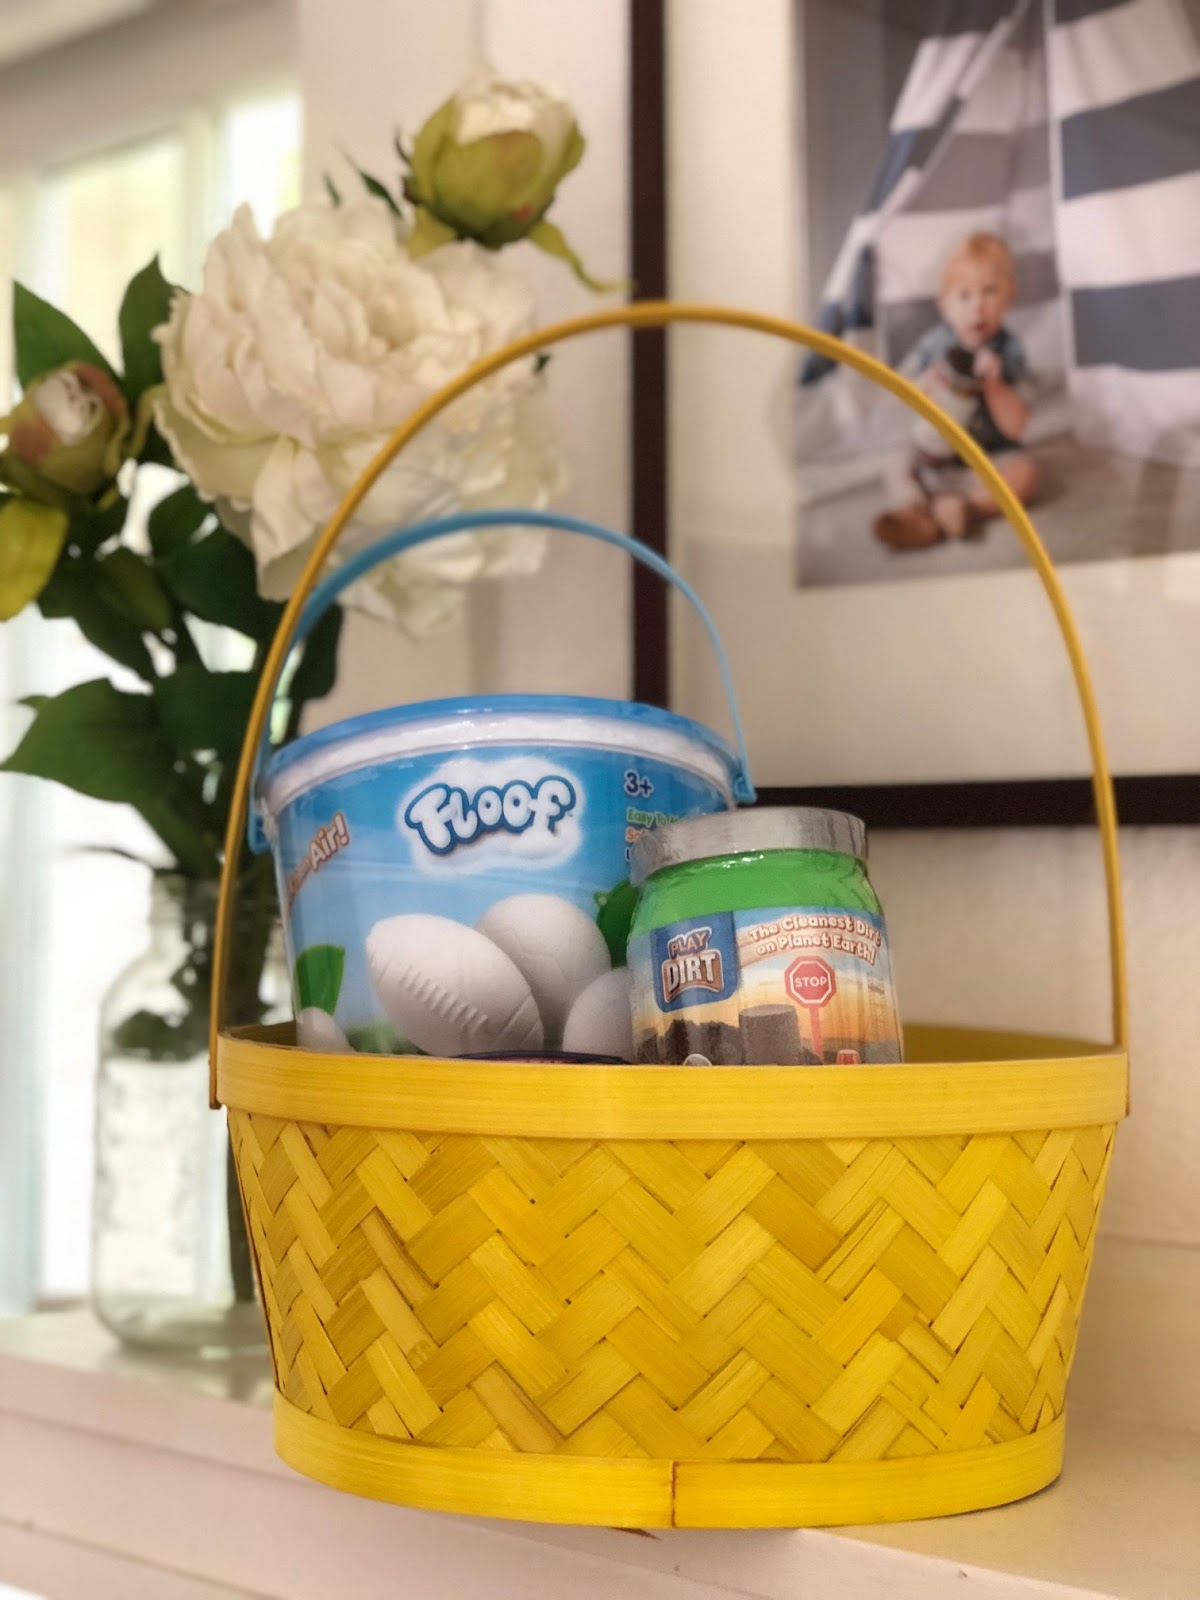 Easter baskets ideas one of my favorite things for the boys easter baskets this year is this jar of play dirt by play visions my boys saw this a couple months ago at a negle Gallery